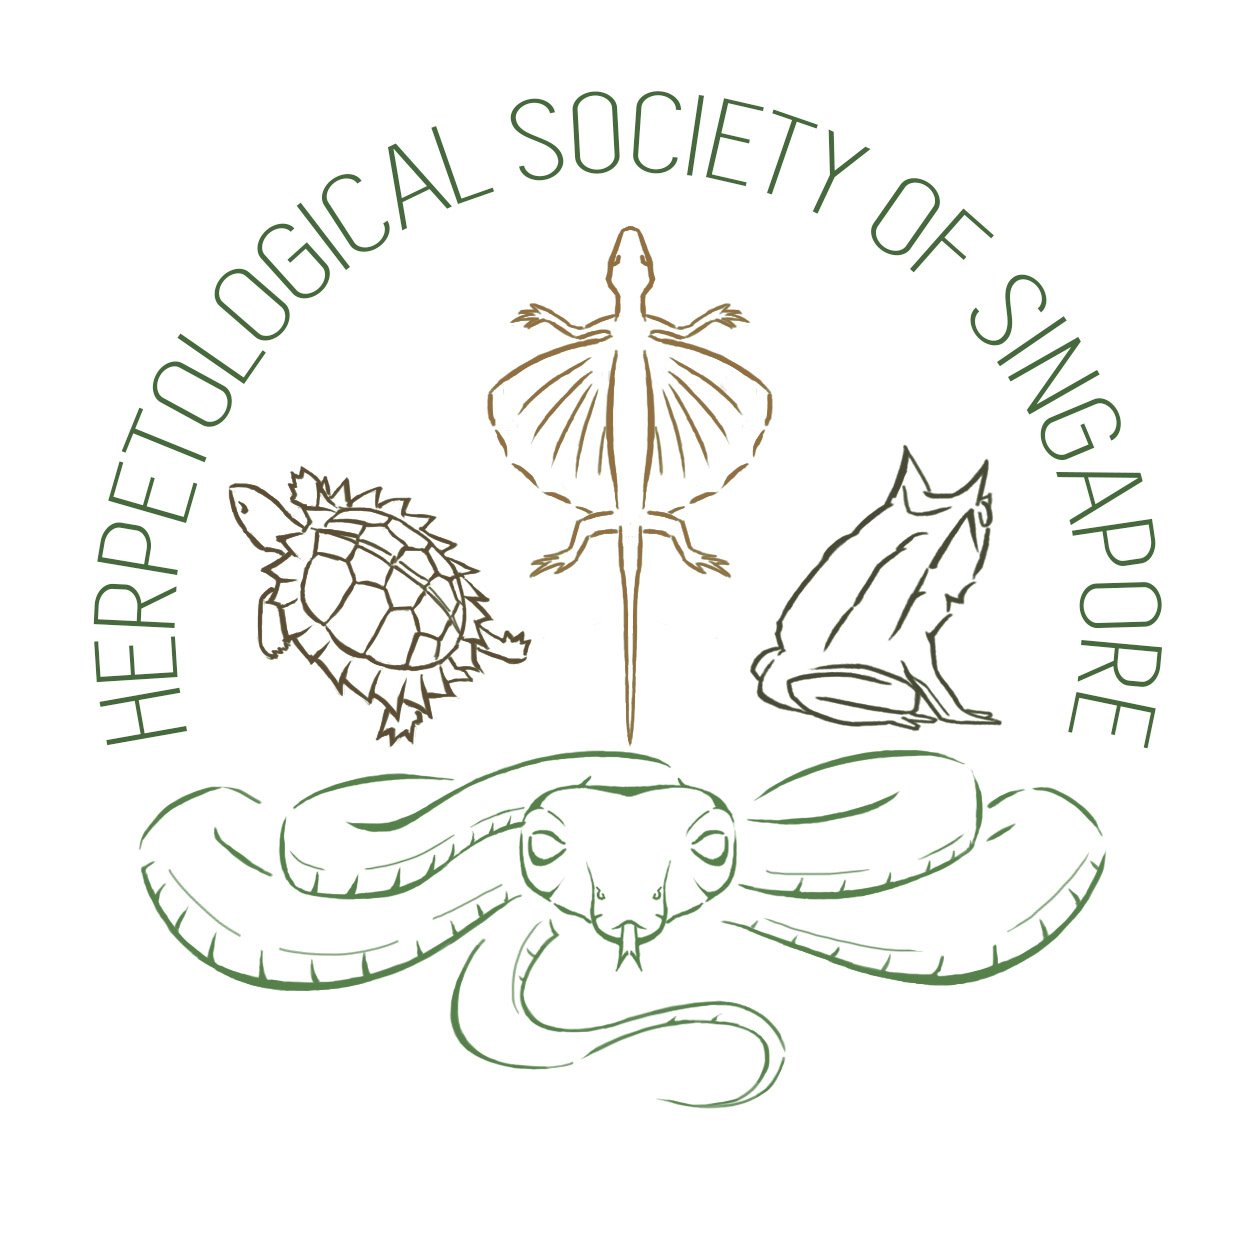 Herpetological Society of Singapore